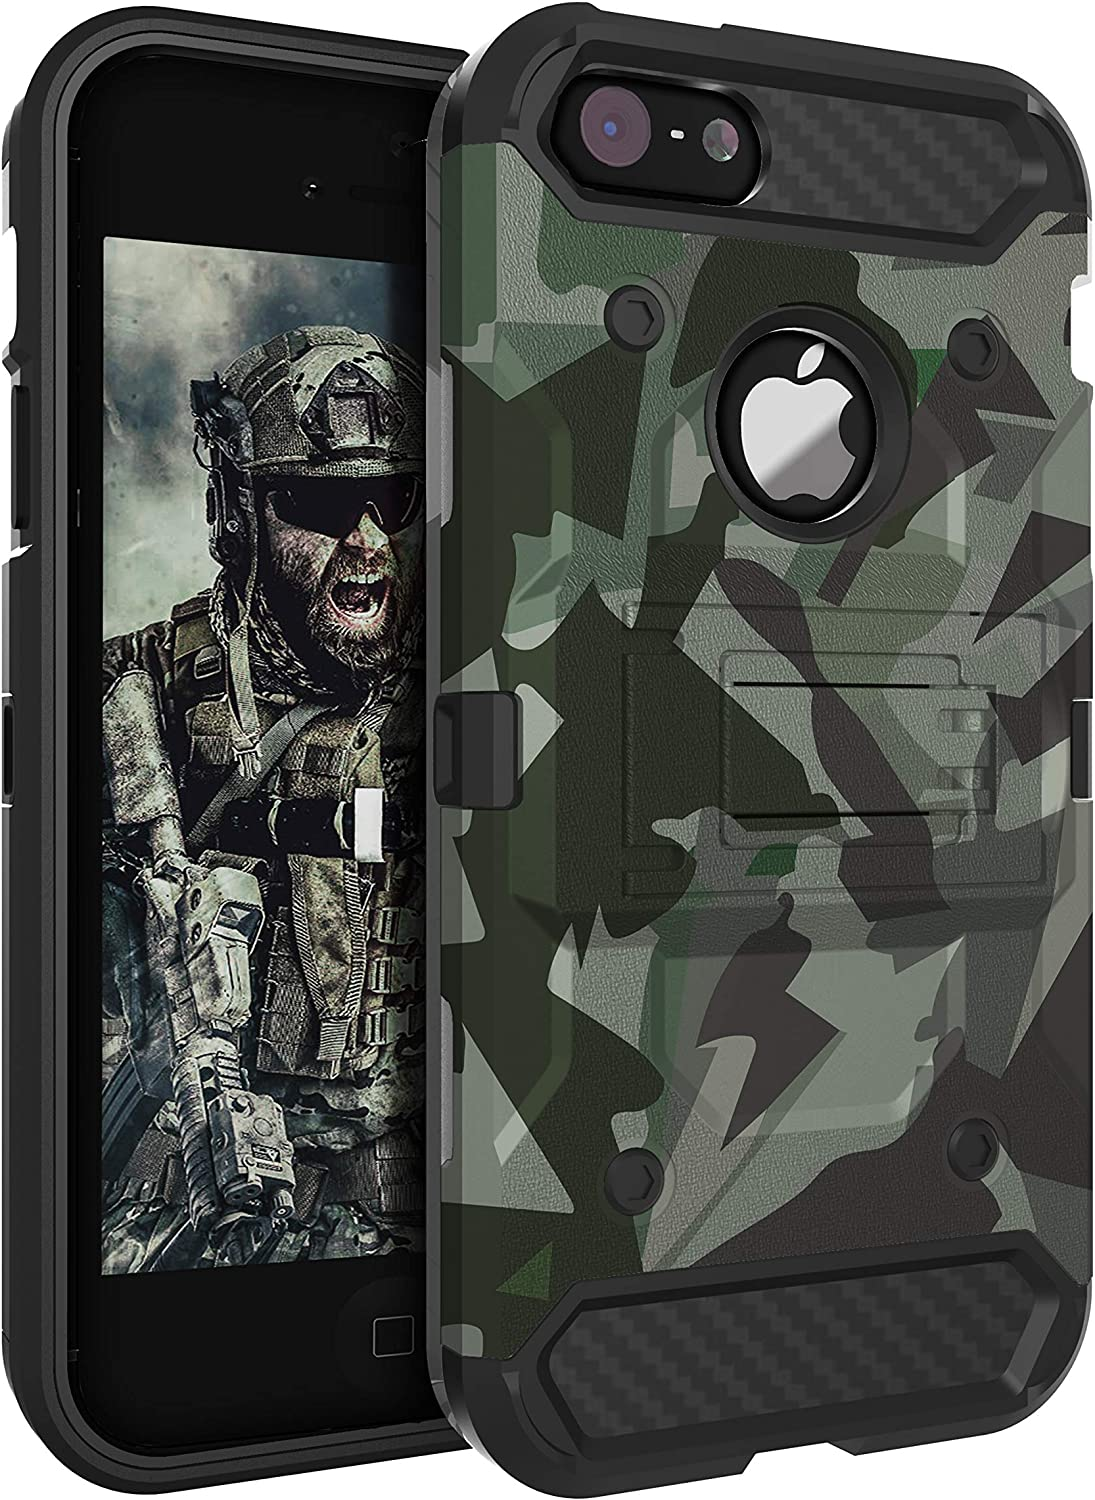 HUATRK iPhone 5 Case iPhone 5S Case iPhone SE 2016 Case Kickstand Three Layer Heavy Duty Shockproof Protective Camo Cover,Camouflage Green